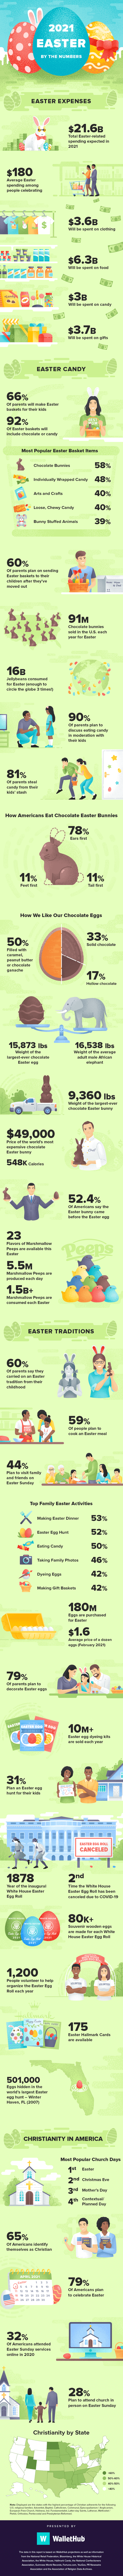 2021 easter by the numbers v2